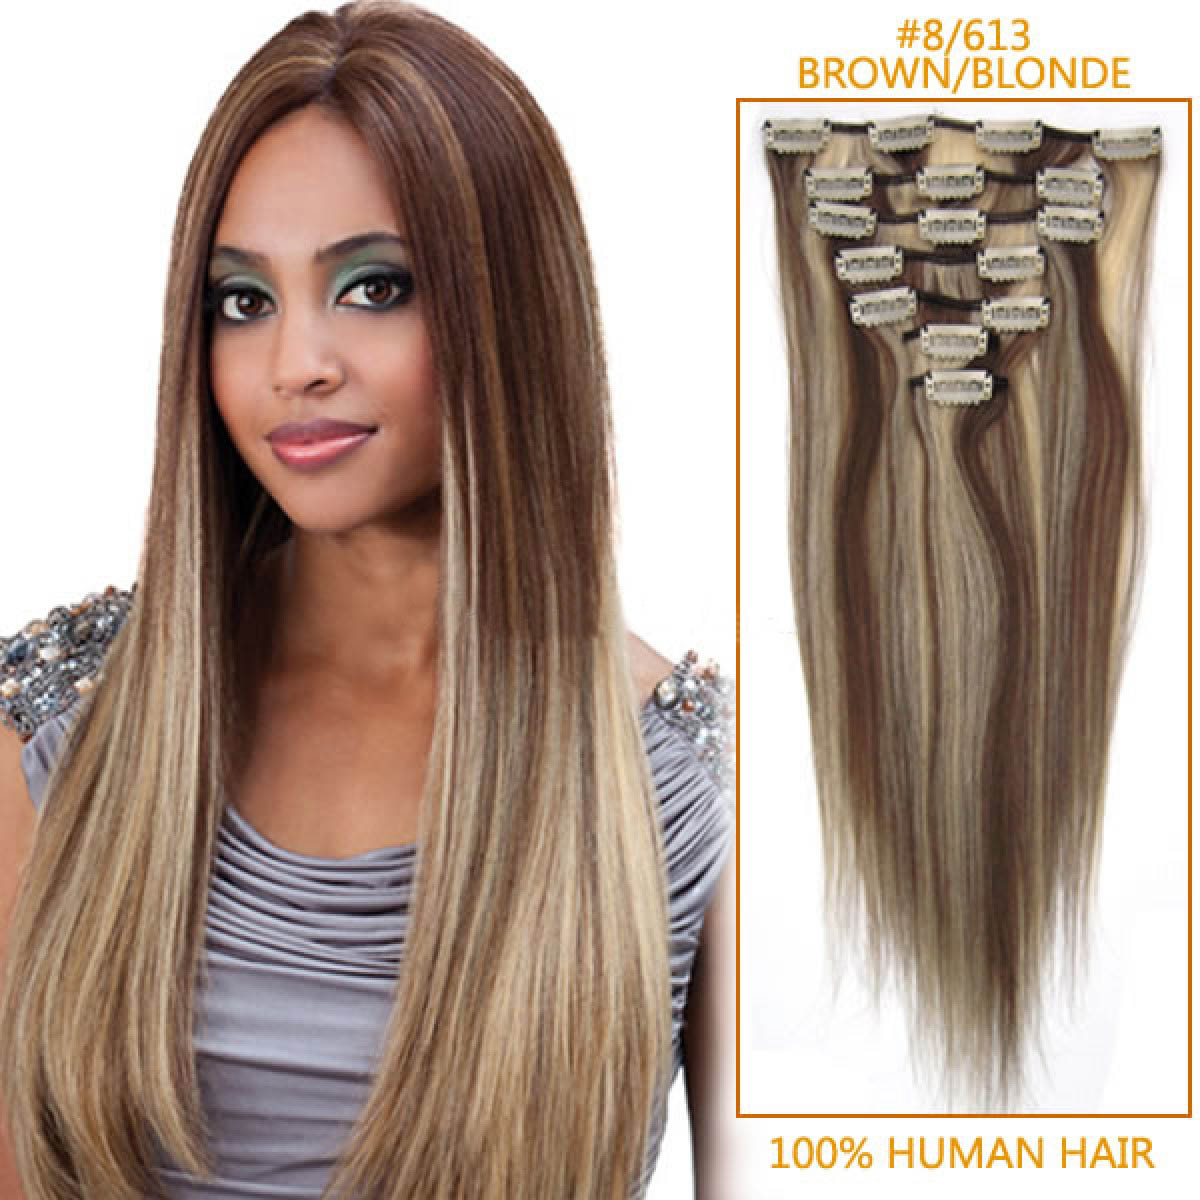 26 Inch #8/613 Brown/Blonde Clip In Remy Human Hair Extensions 7pcs ...